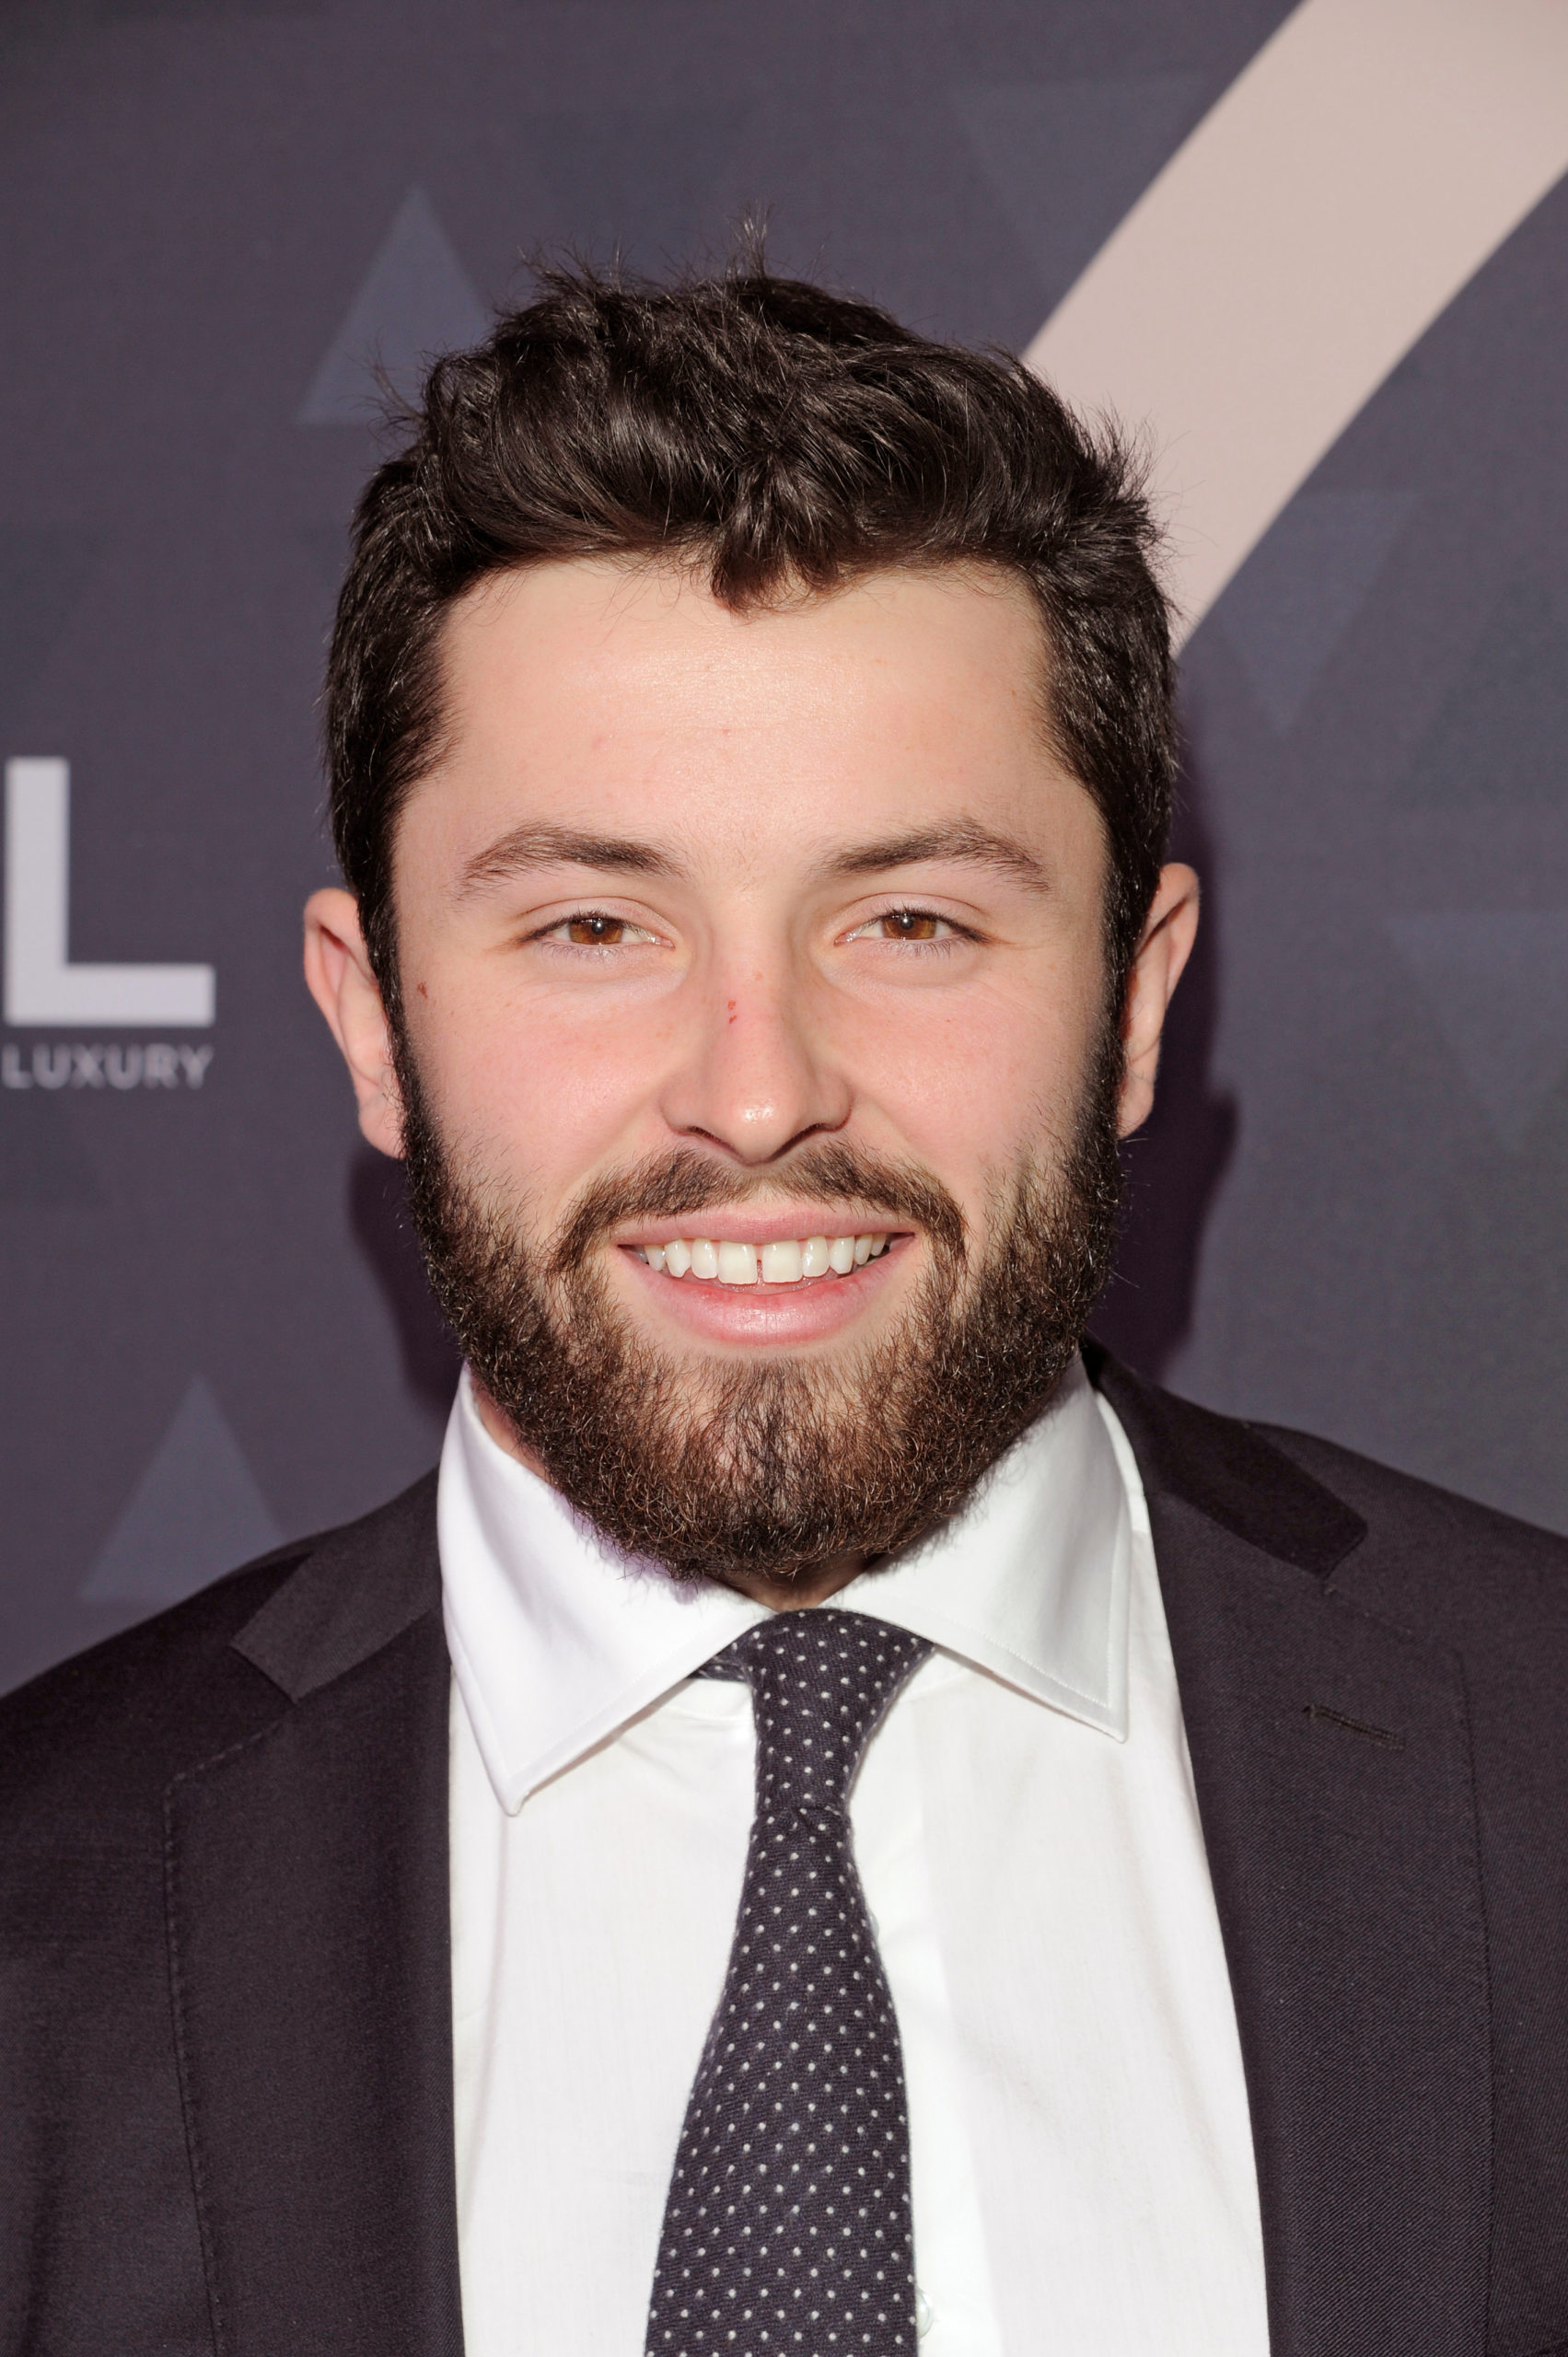 Baker Mayfield: Bio, Contract, and Stats